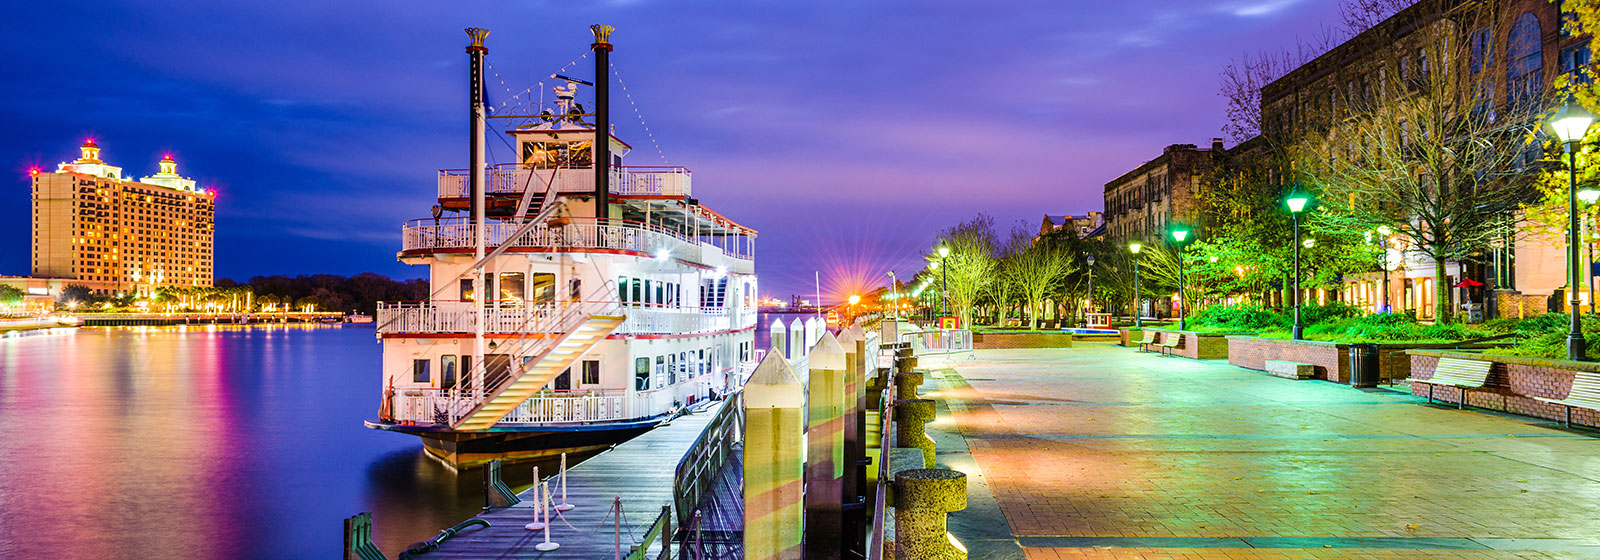 Boating in the South – Savannah, Georgia